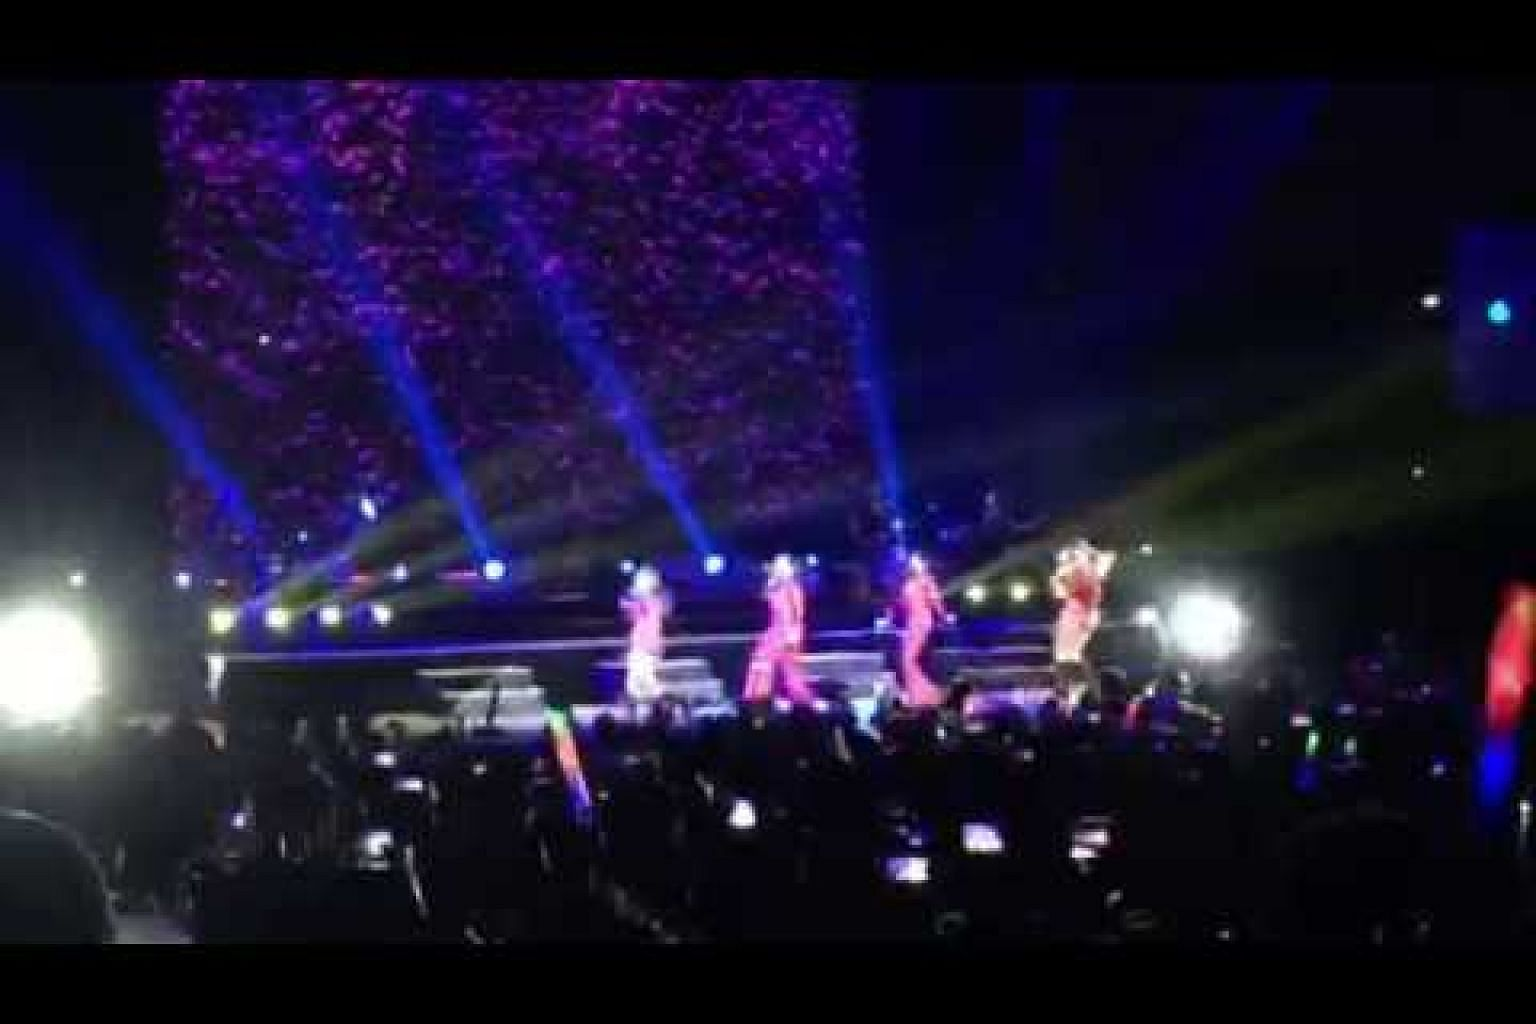 Fifth Harmony performs Work From Home at The Star Theatre